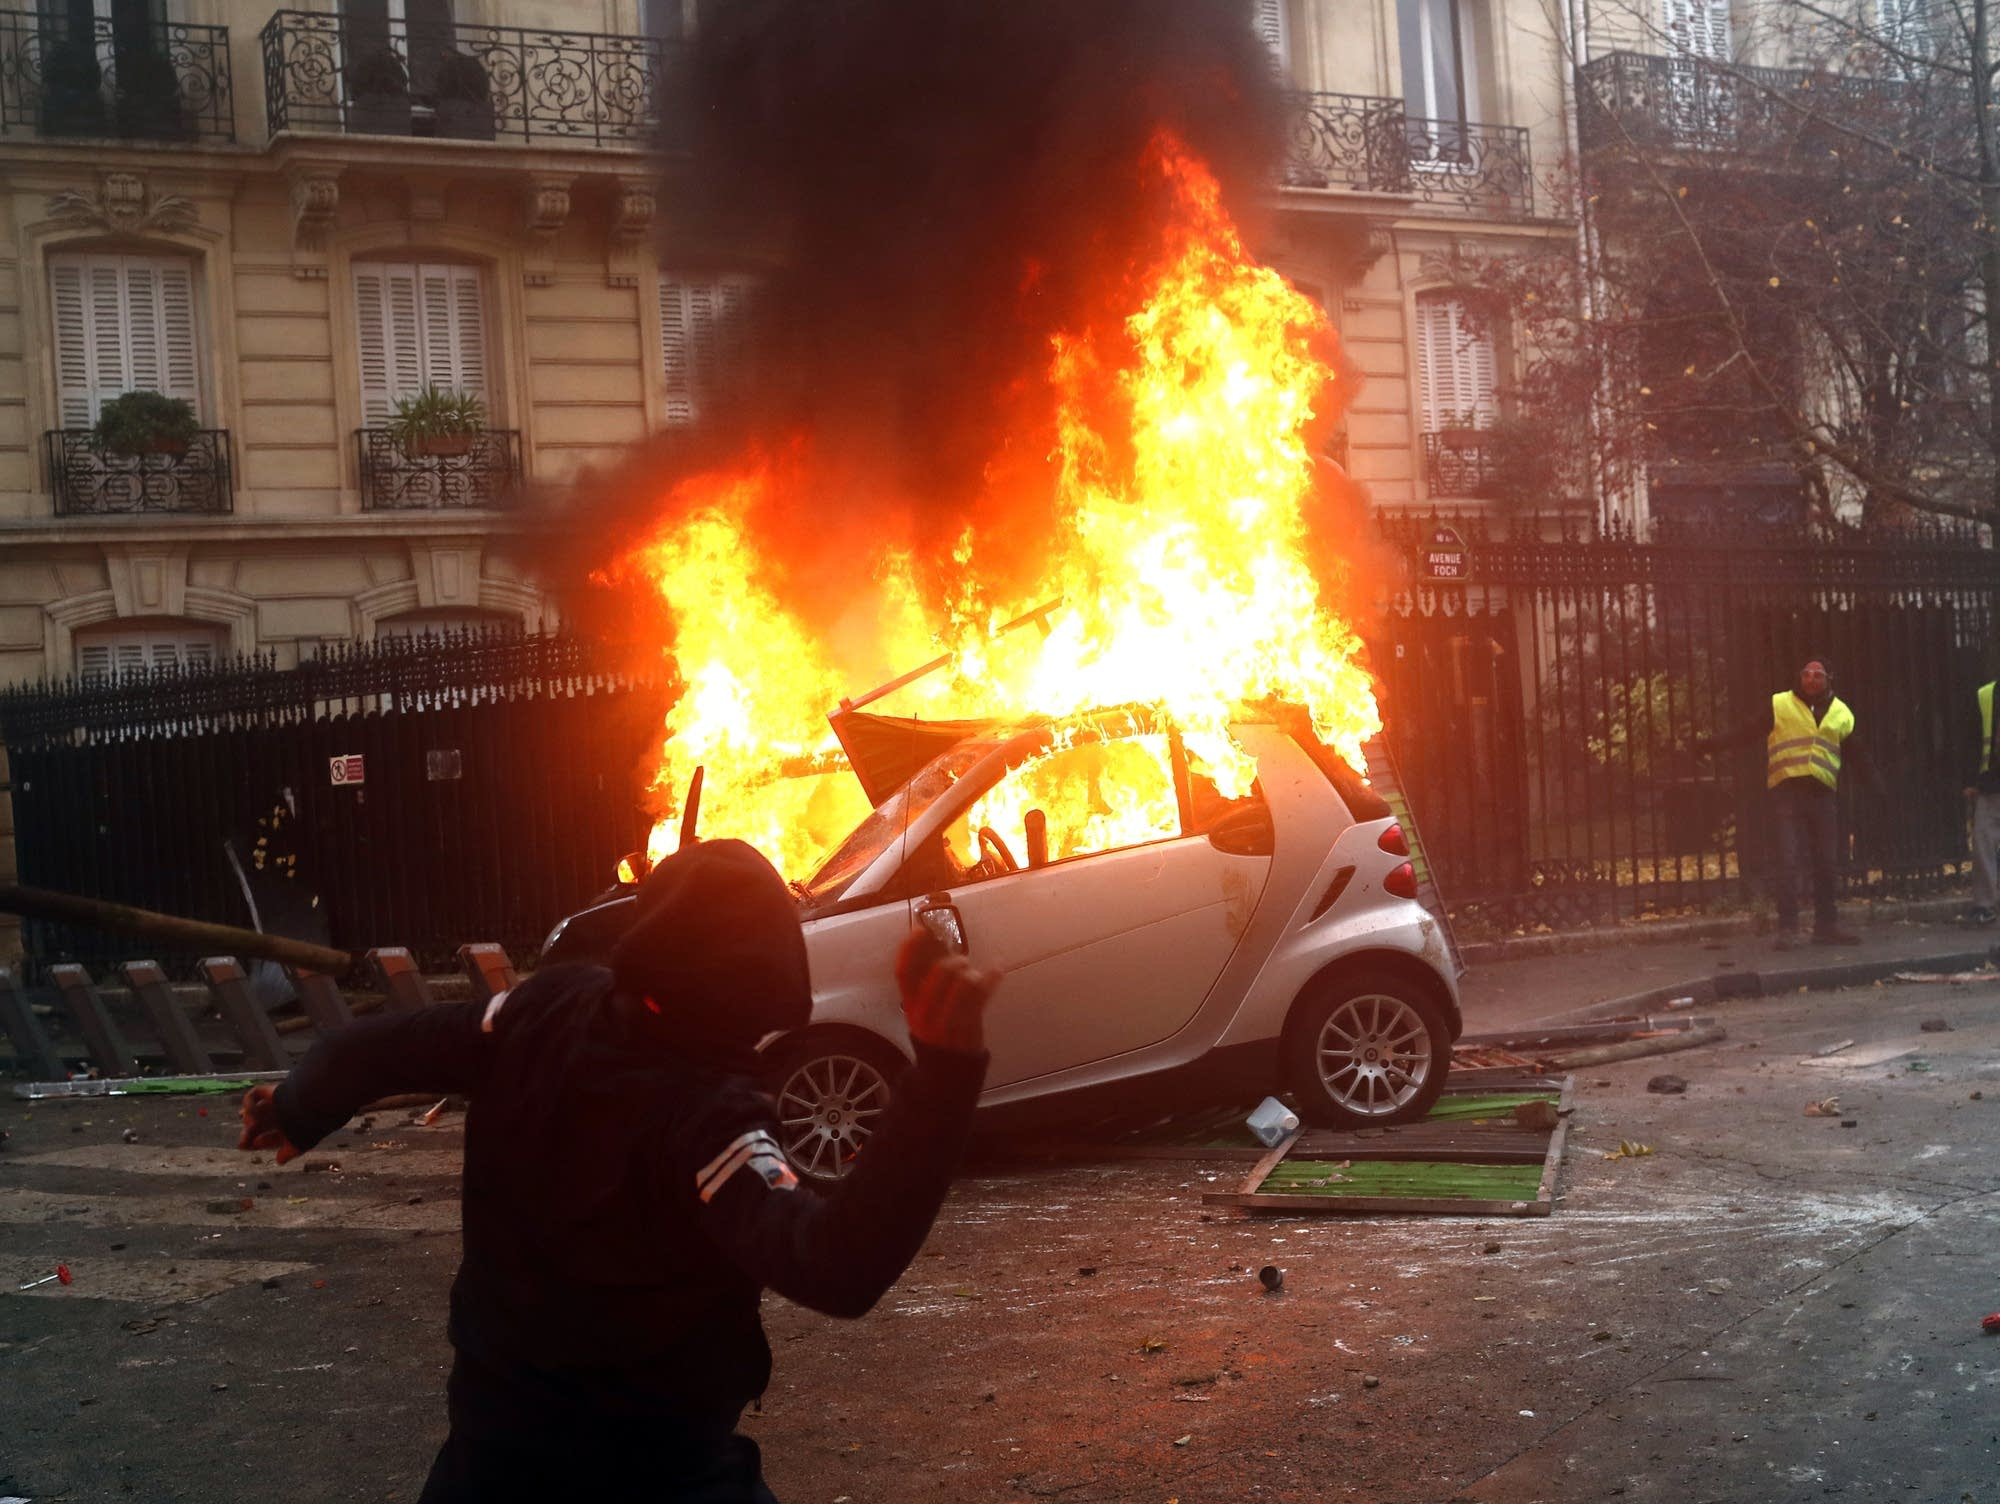 France's most violent urban riot in years engulfed parts of Paris Saturday